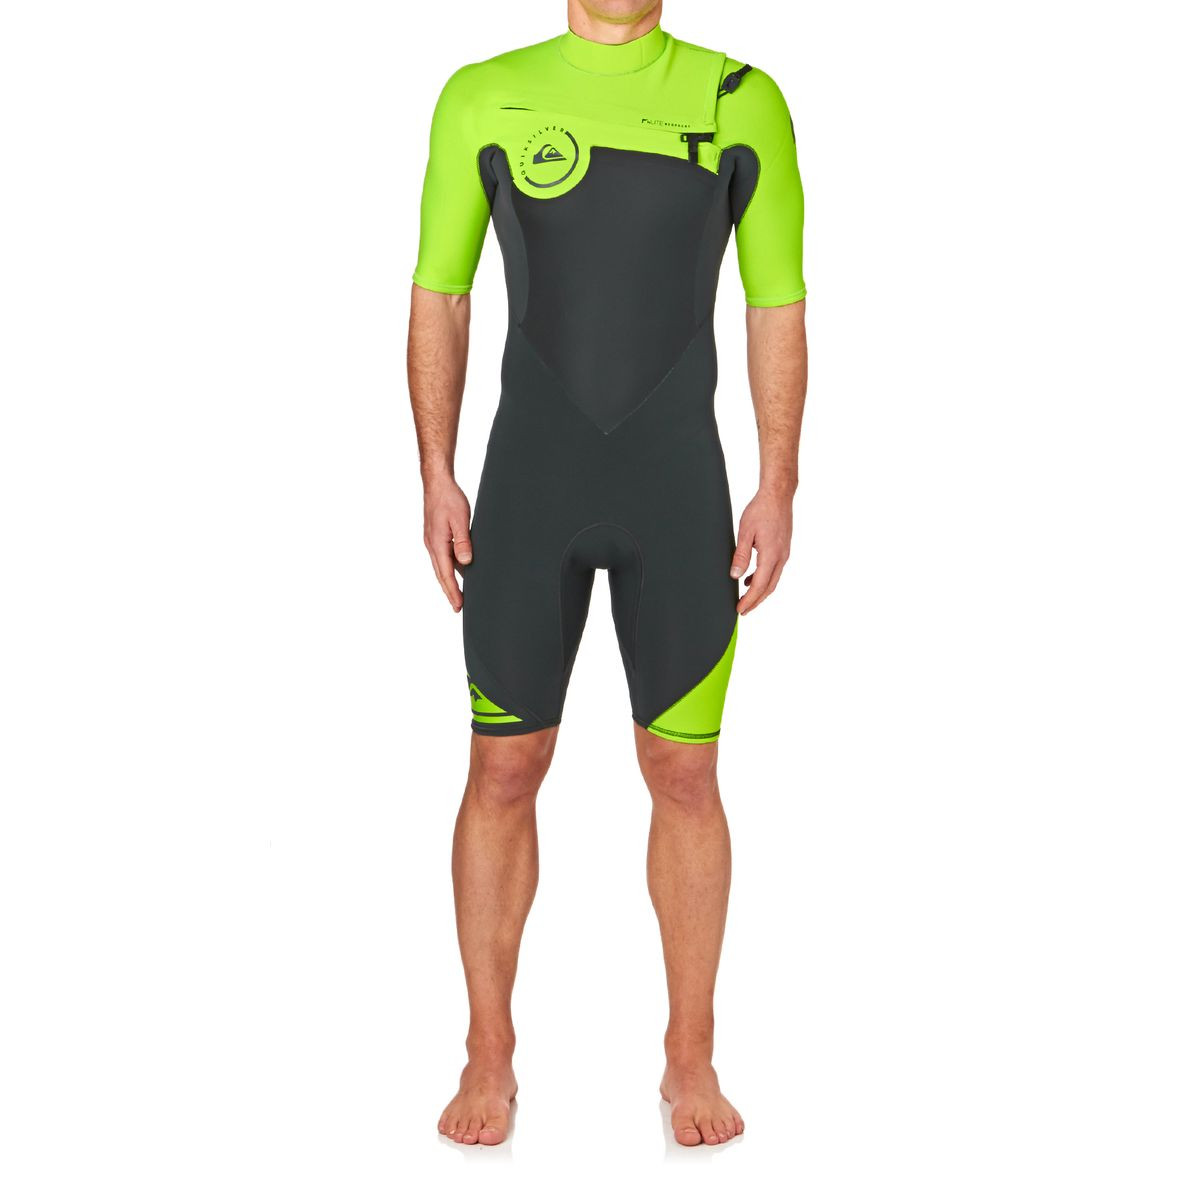 Quiksilver Syncro 2mm 2017 Chest Zip Short Sleeve Shorty Wetsuit - Saftey Yellow